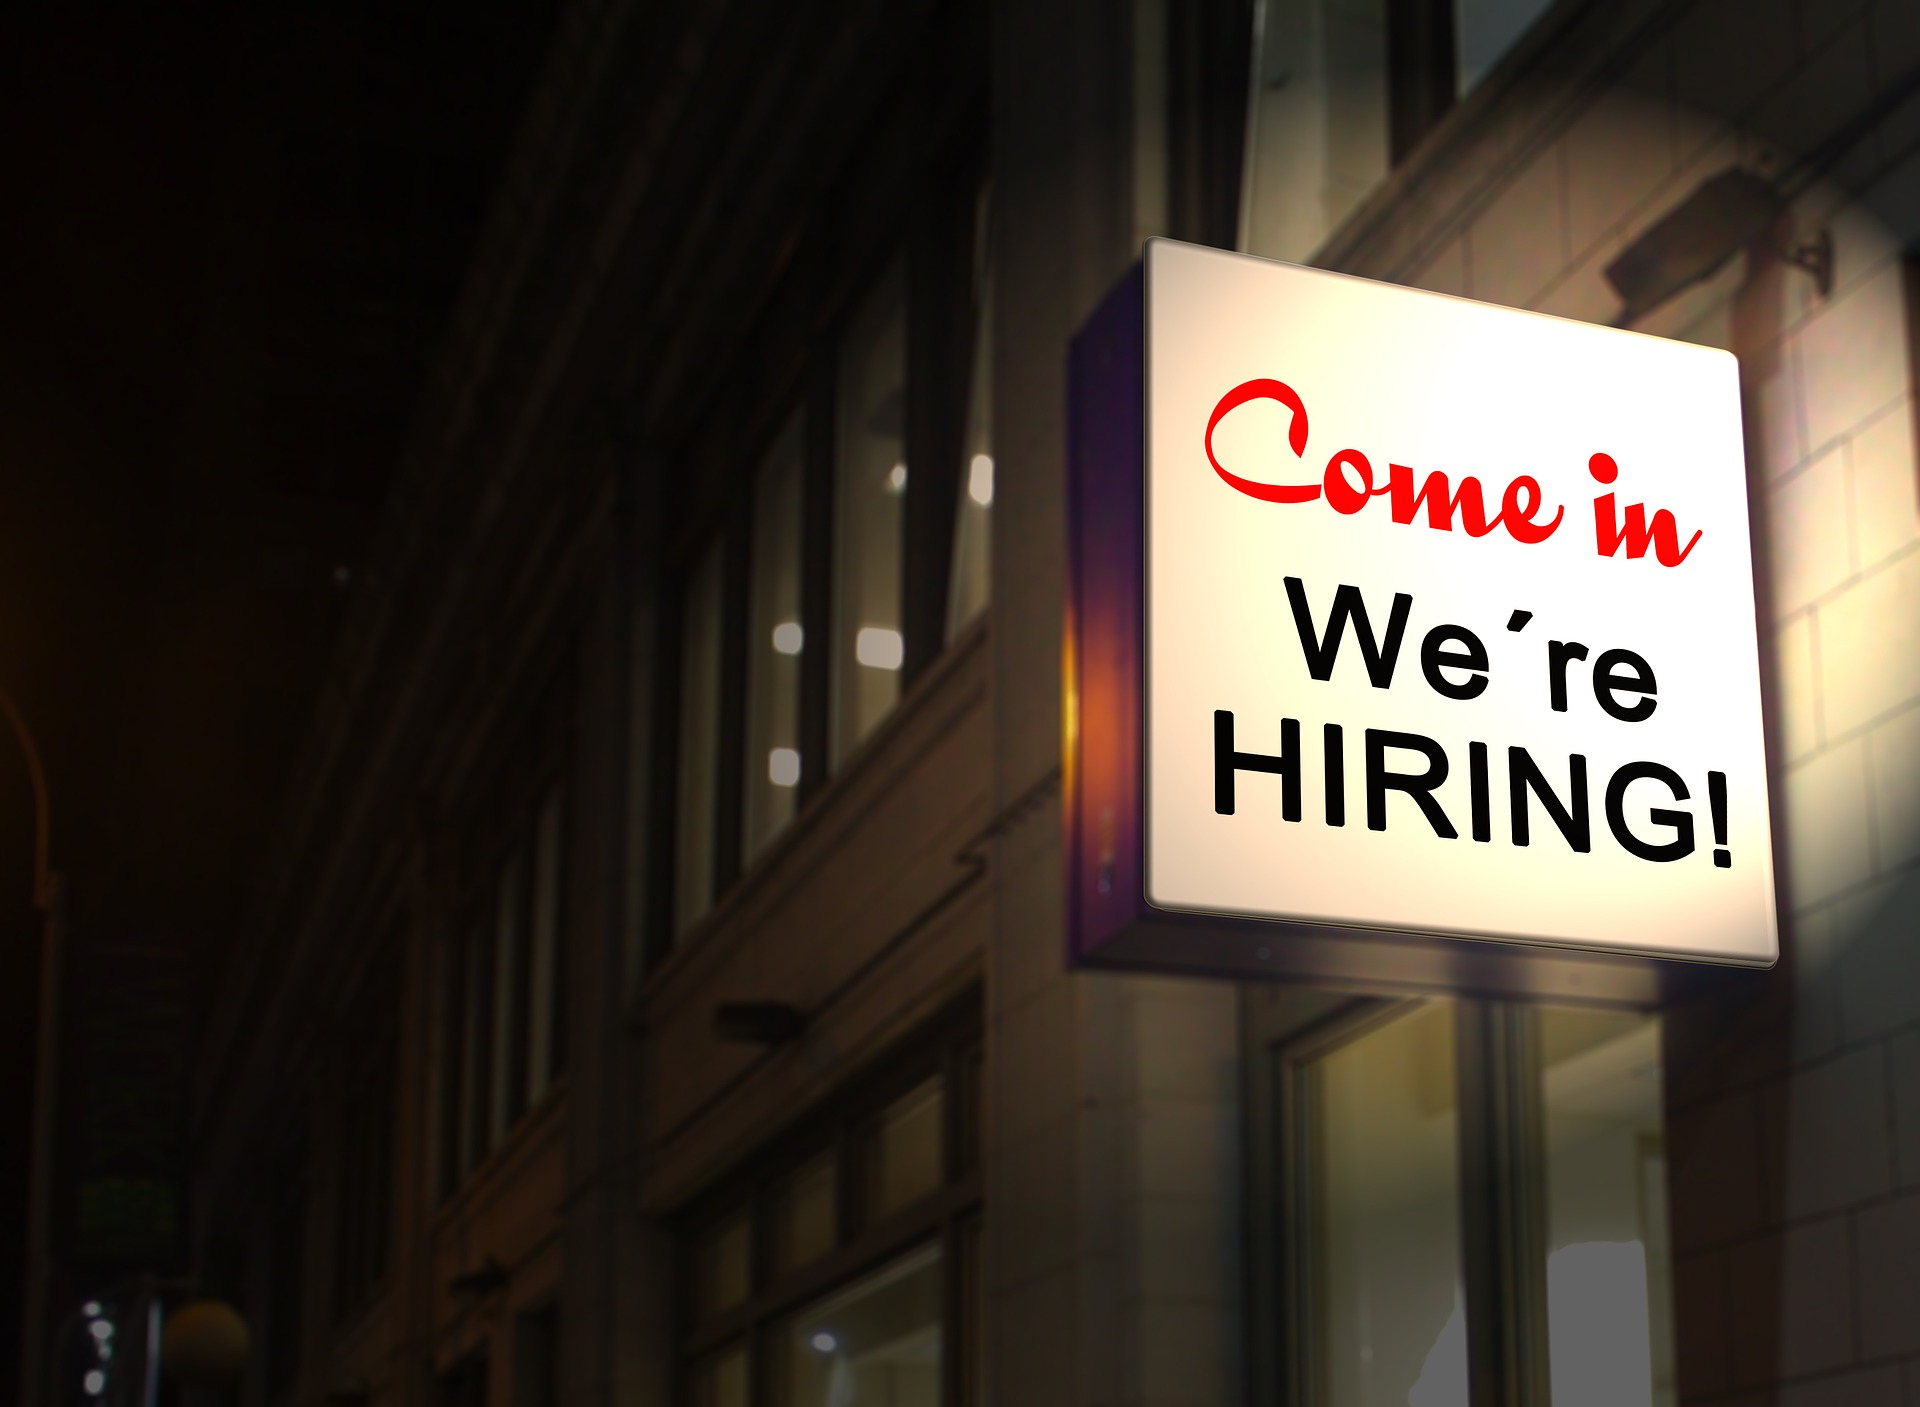 Image stock photo of storefront sign reading come in, we're hiring